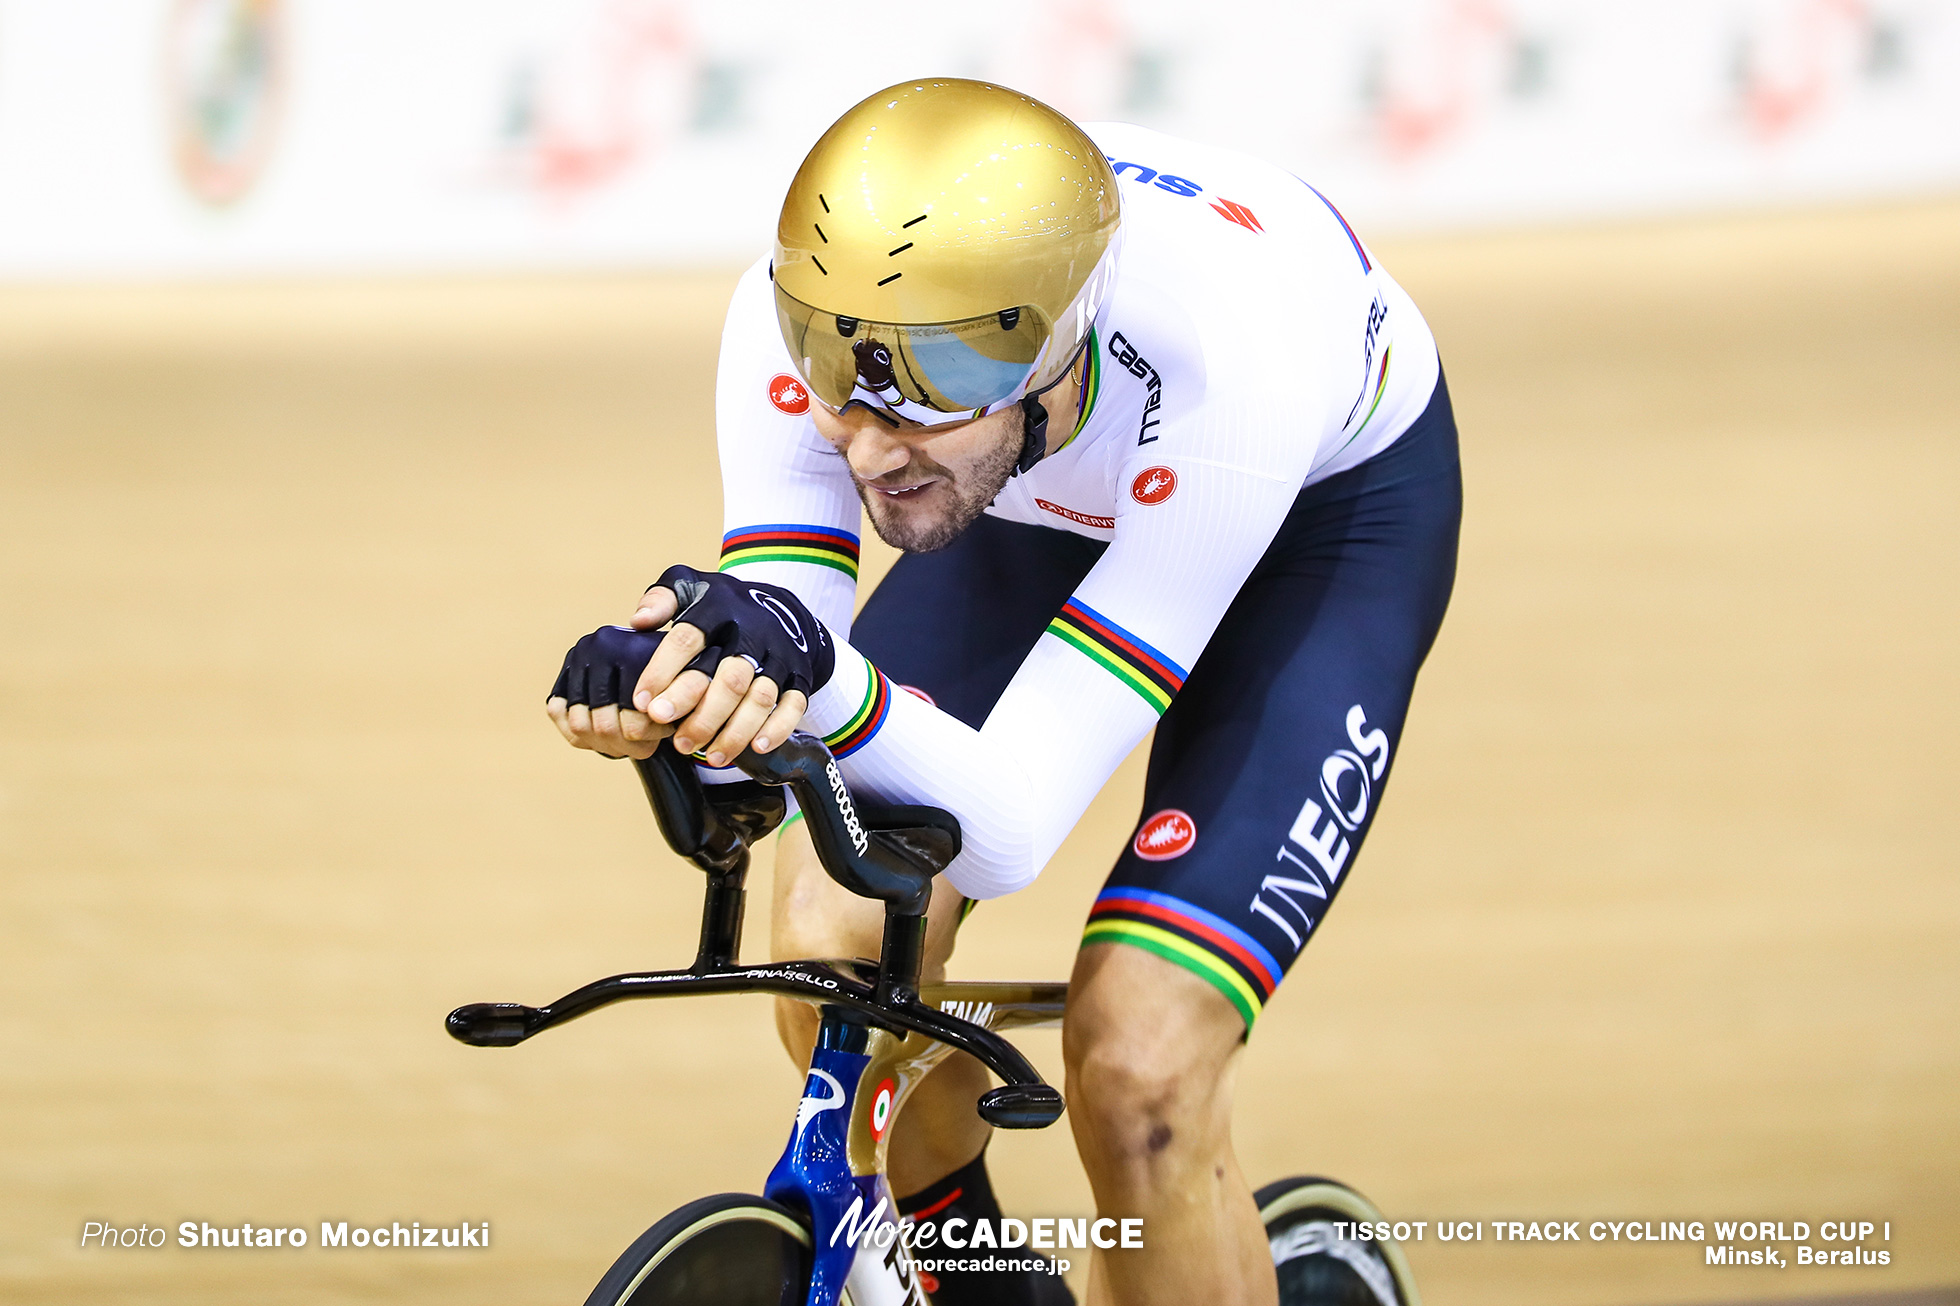 フィリッポ・ガンナ Fillipo Ganna, Final / Men's Individual Pursuit / TISSOT UCI TRACK CYCLING WORLD CUP I, Minsk, Beralus